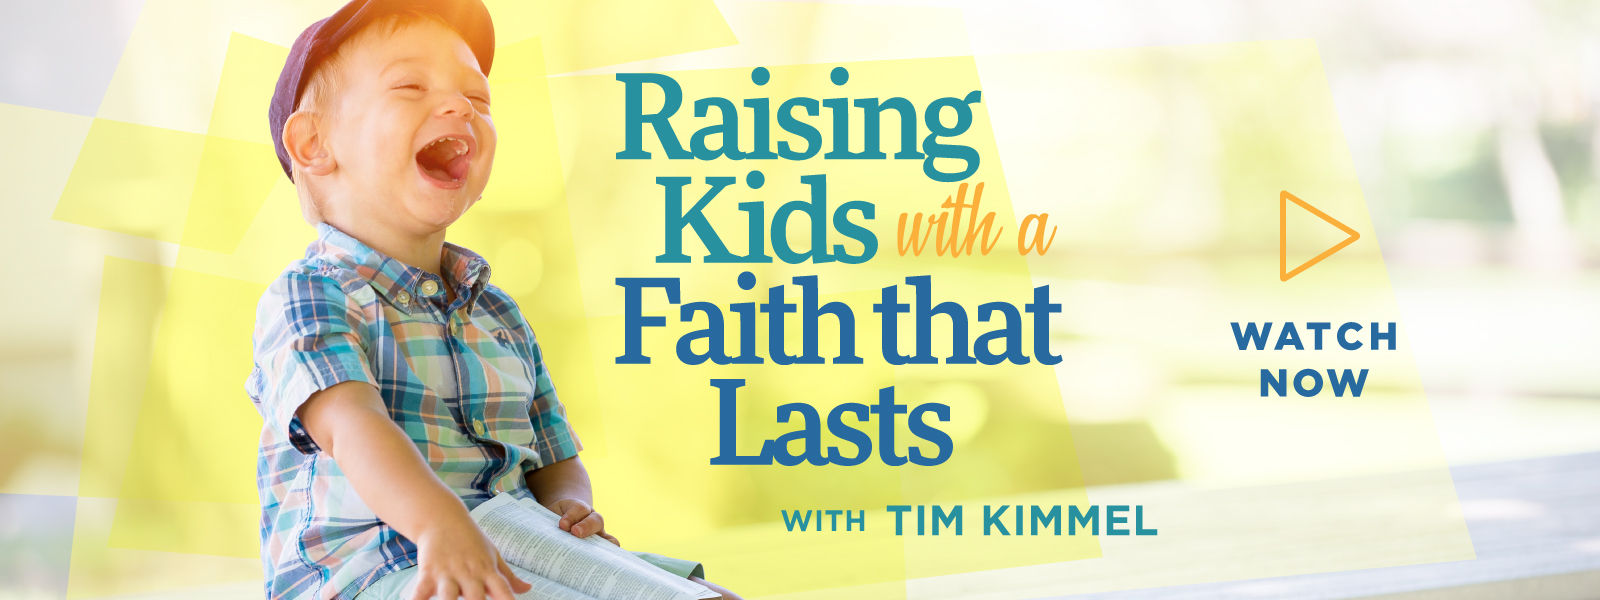 Raising Kids with Faith a That Lasts